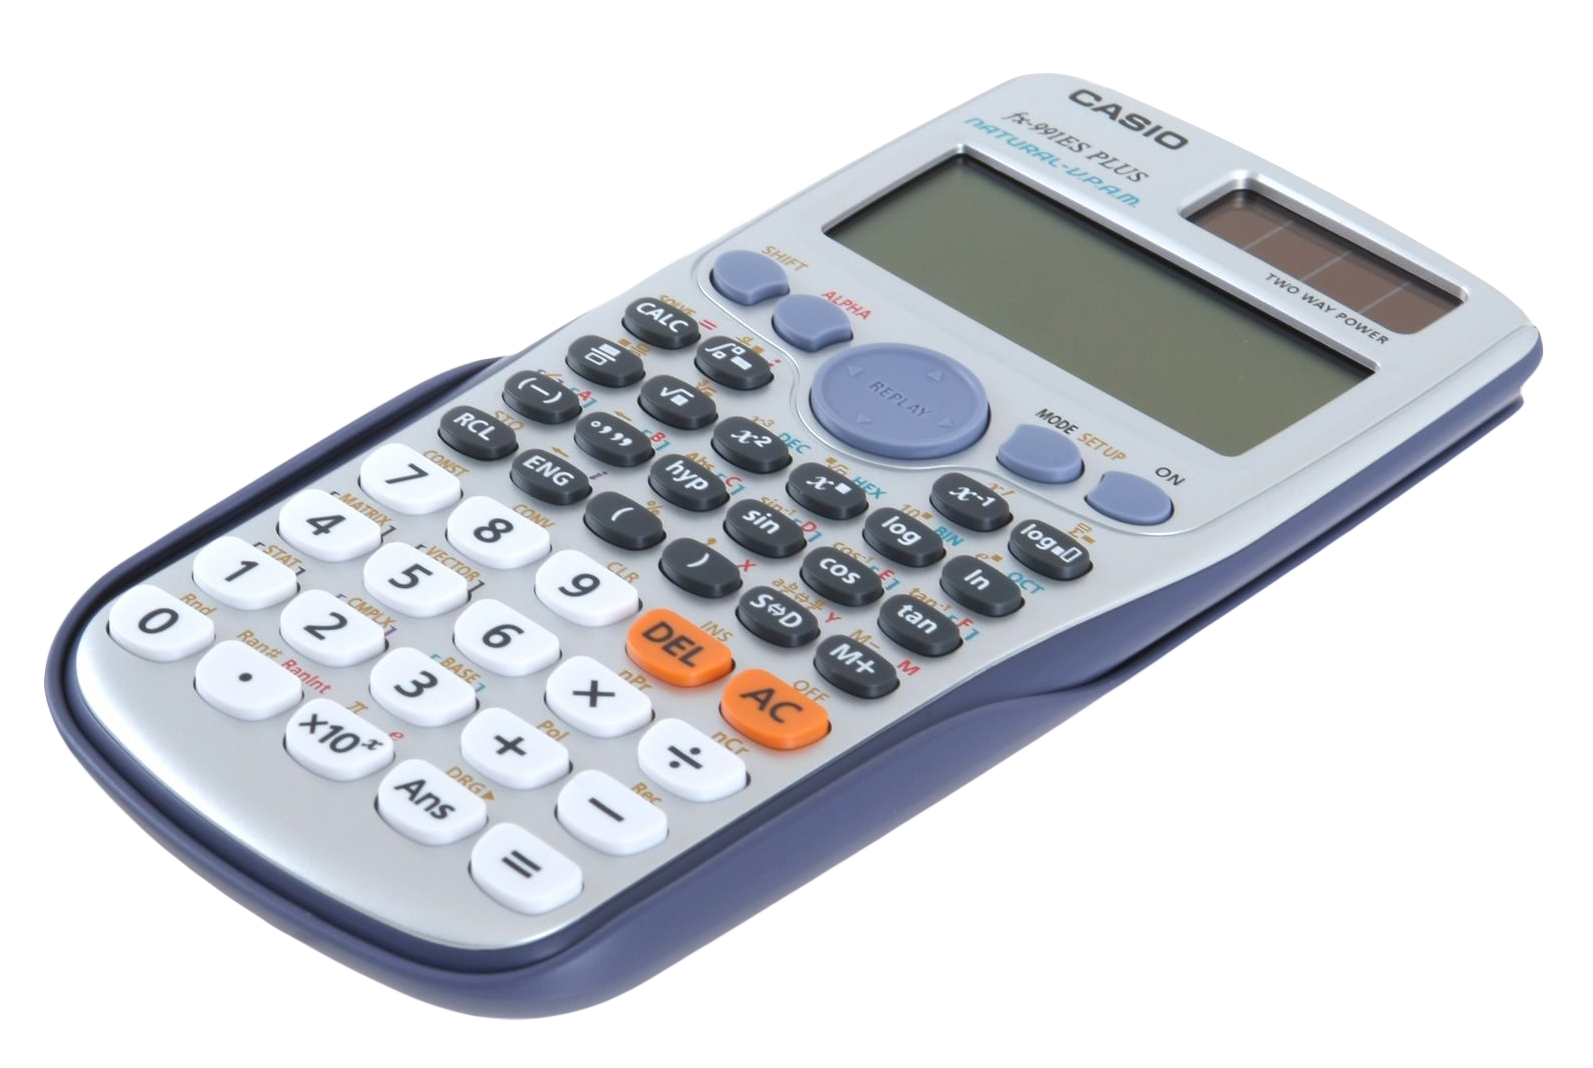 Engineering Scientific Calculator PNG image - Calculator PNG